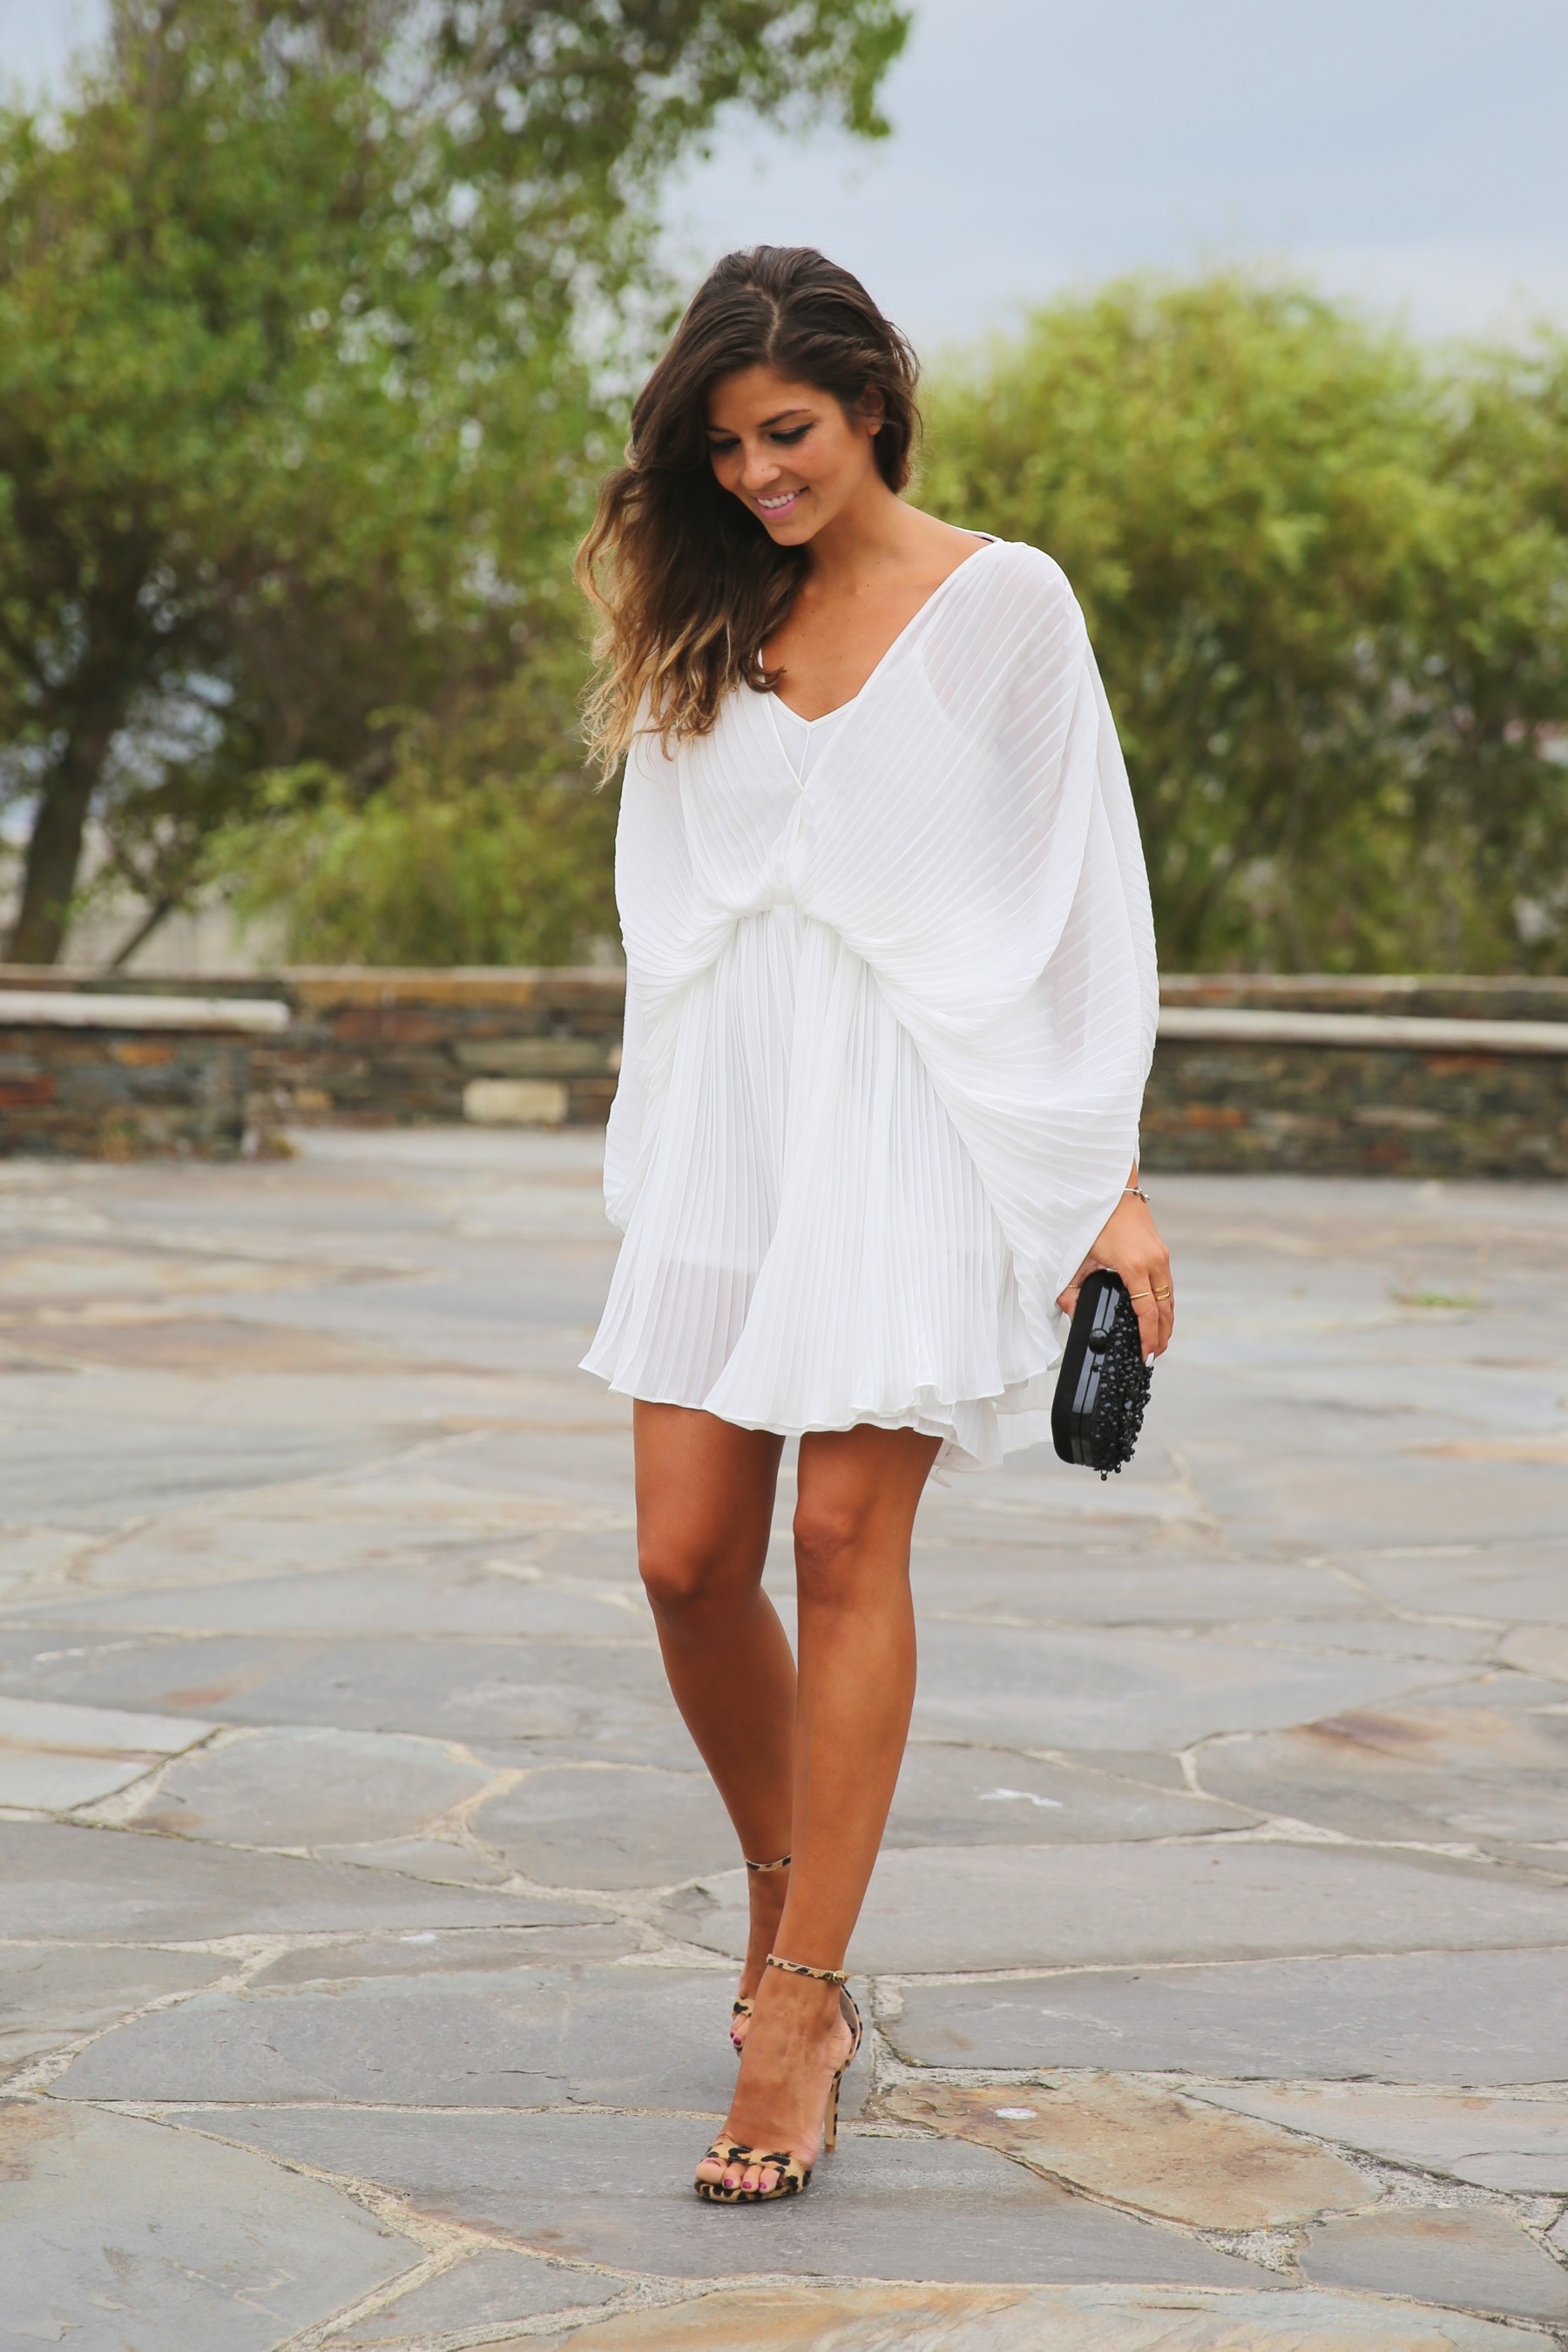 trendy_taste-look-outfit-street_style-fashion_spain-moda_españa-blog-blogger-vestido_blanco-white_dress-müic-jewels-joyas-leo_sandals-sandalias_leopardo-clutch_pedreria-12